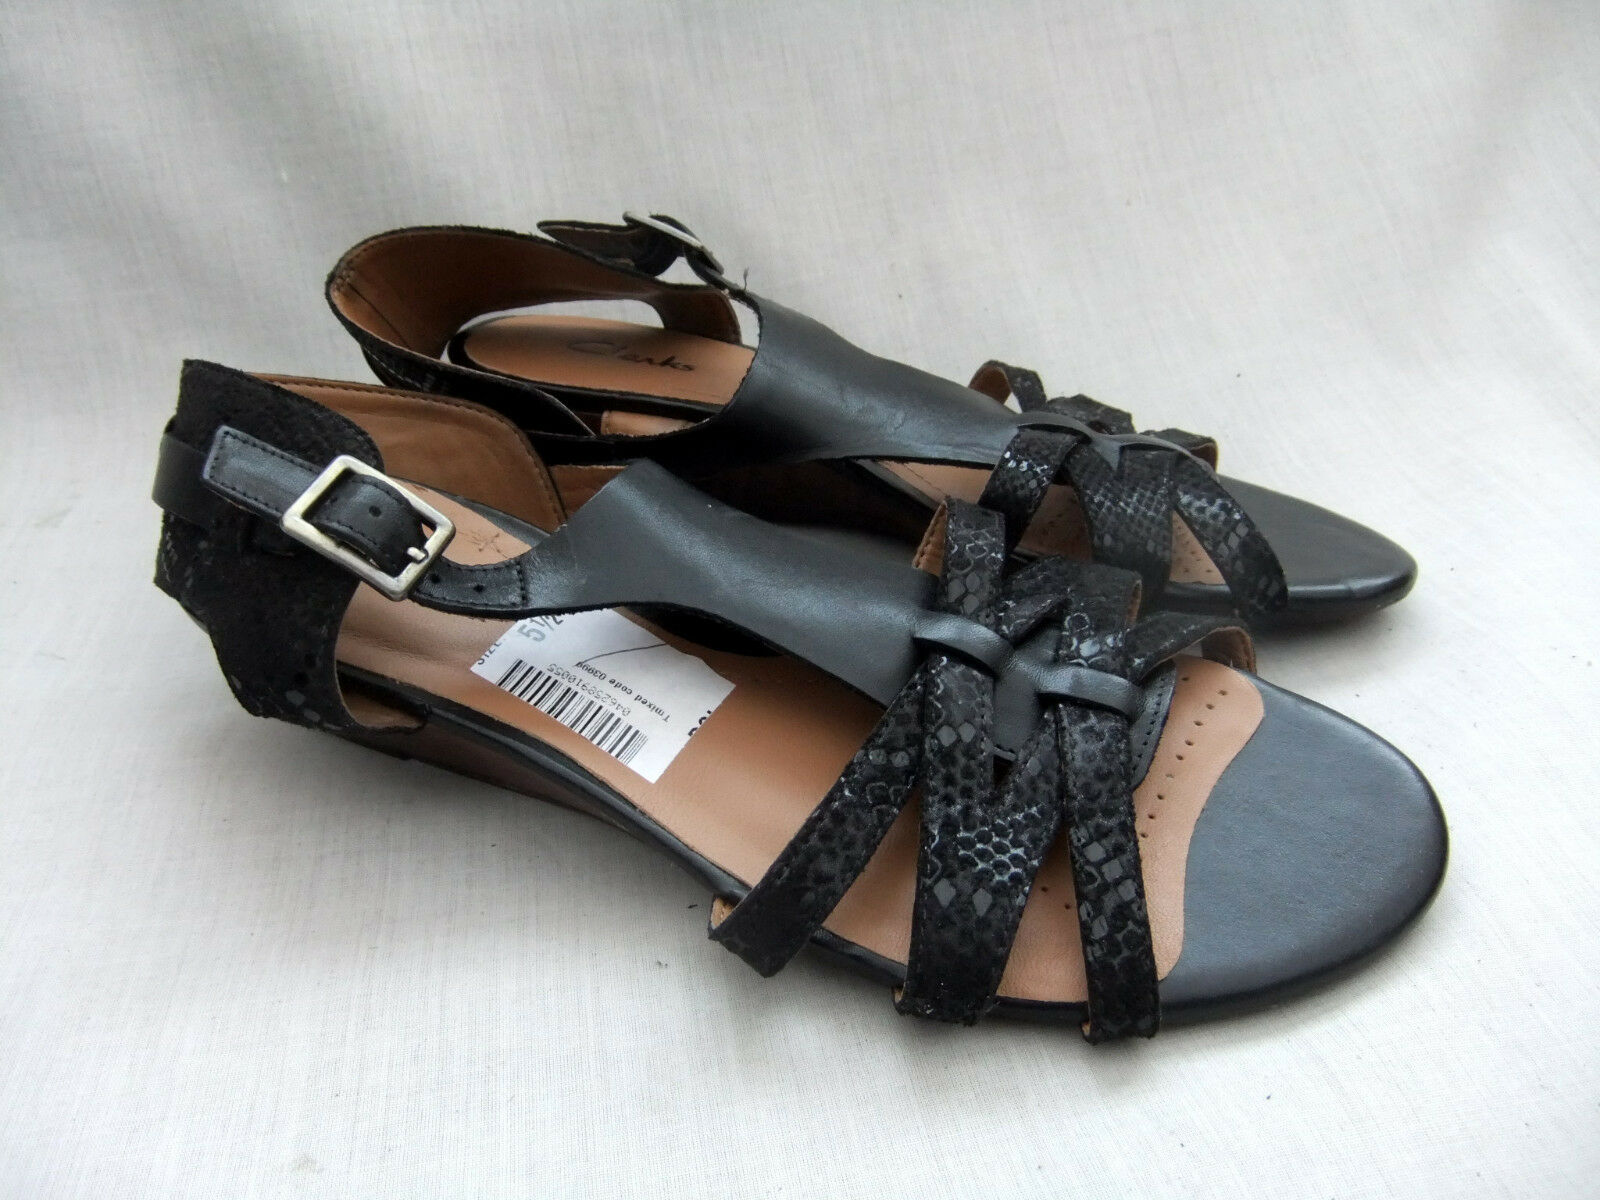 NEW CLARKS PLAYFUL CLUB femmes noir COMBI LEATHER WEDGE SANDALS Taille 5.5   39